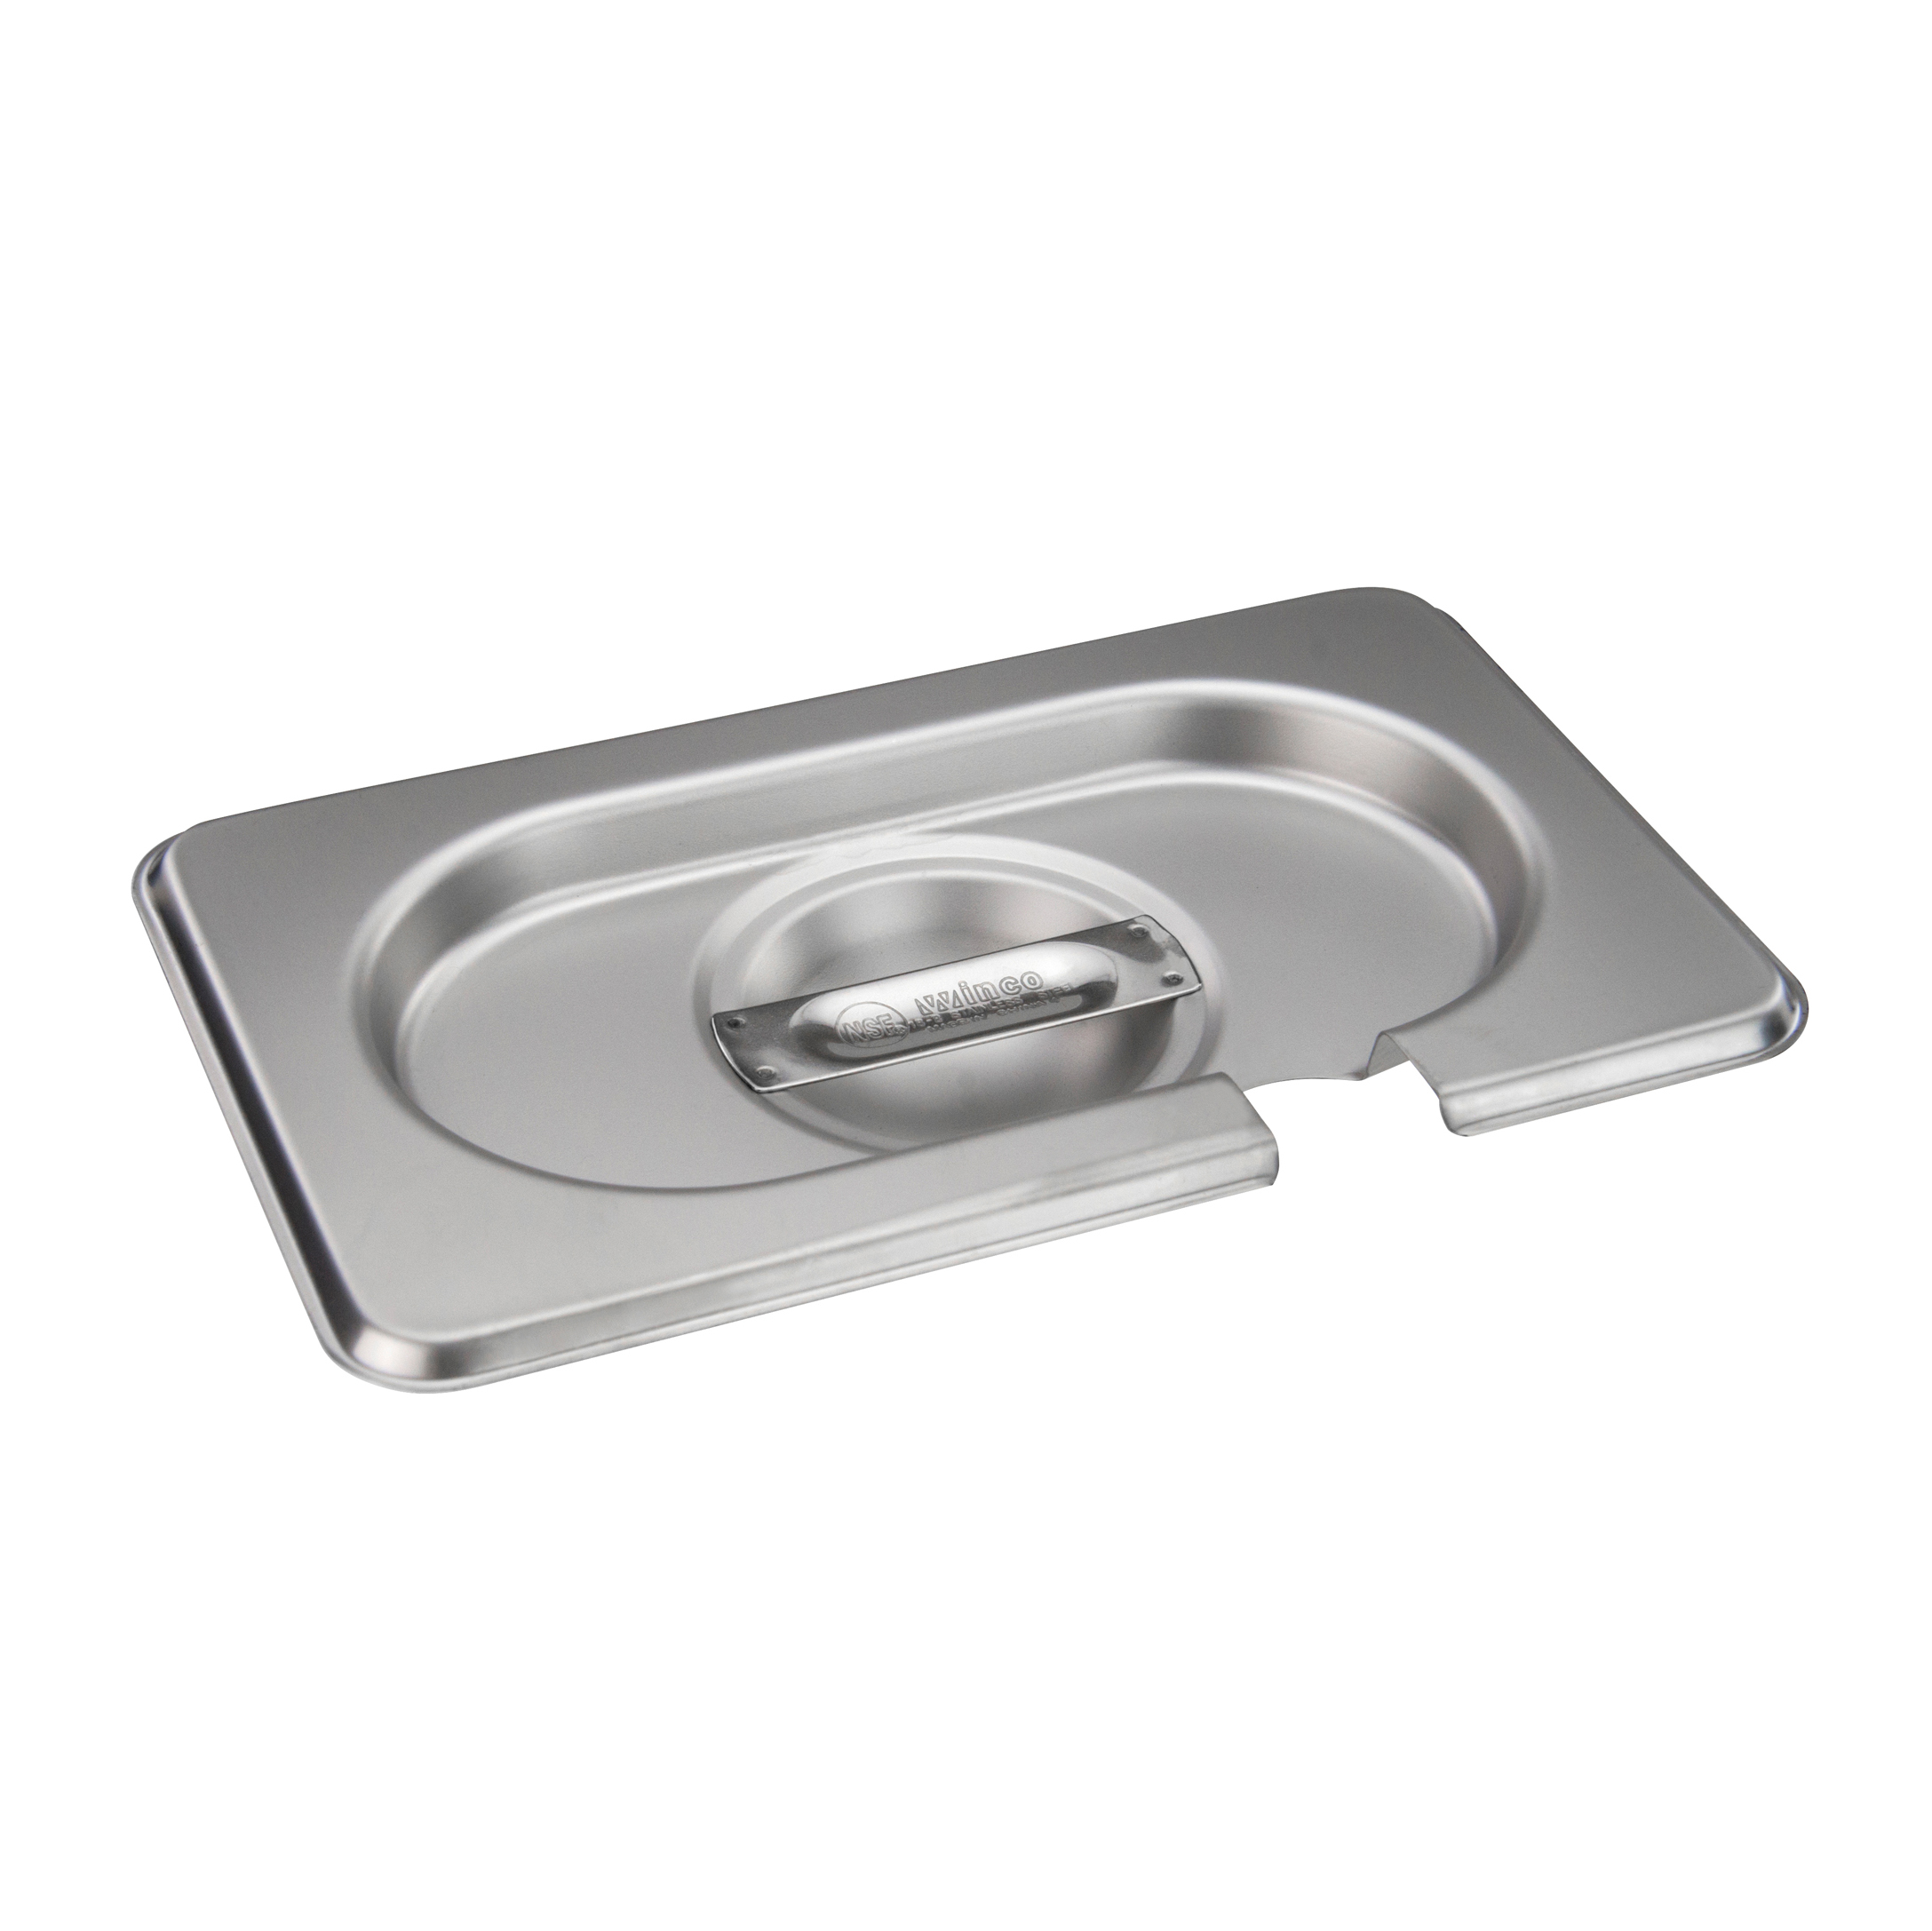 Winco SPCN-GN steam table pan cover, stainless steel